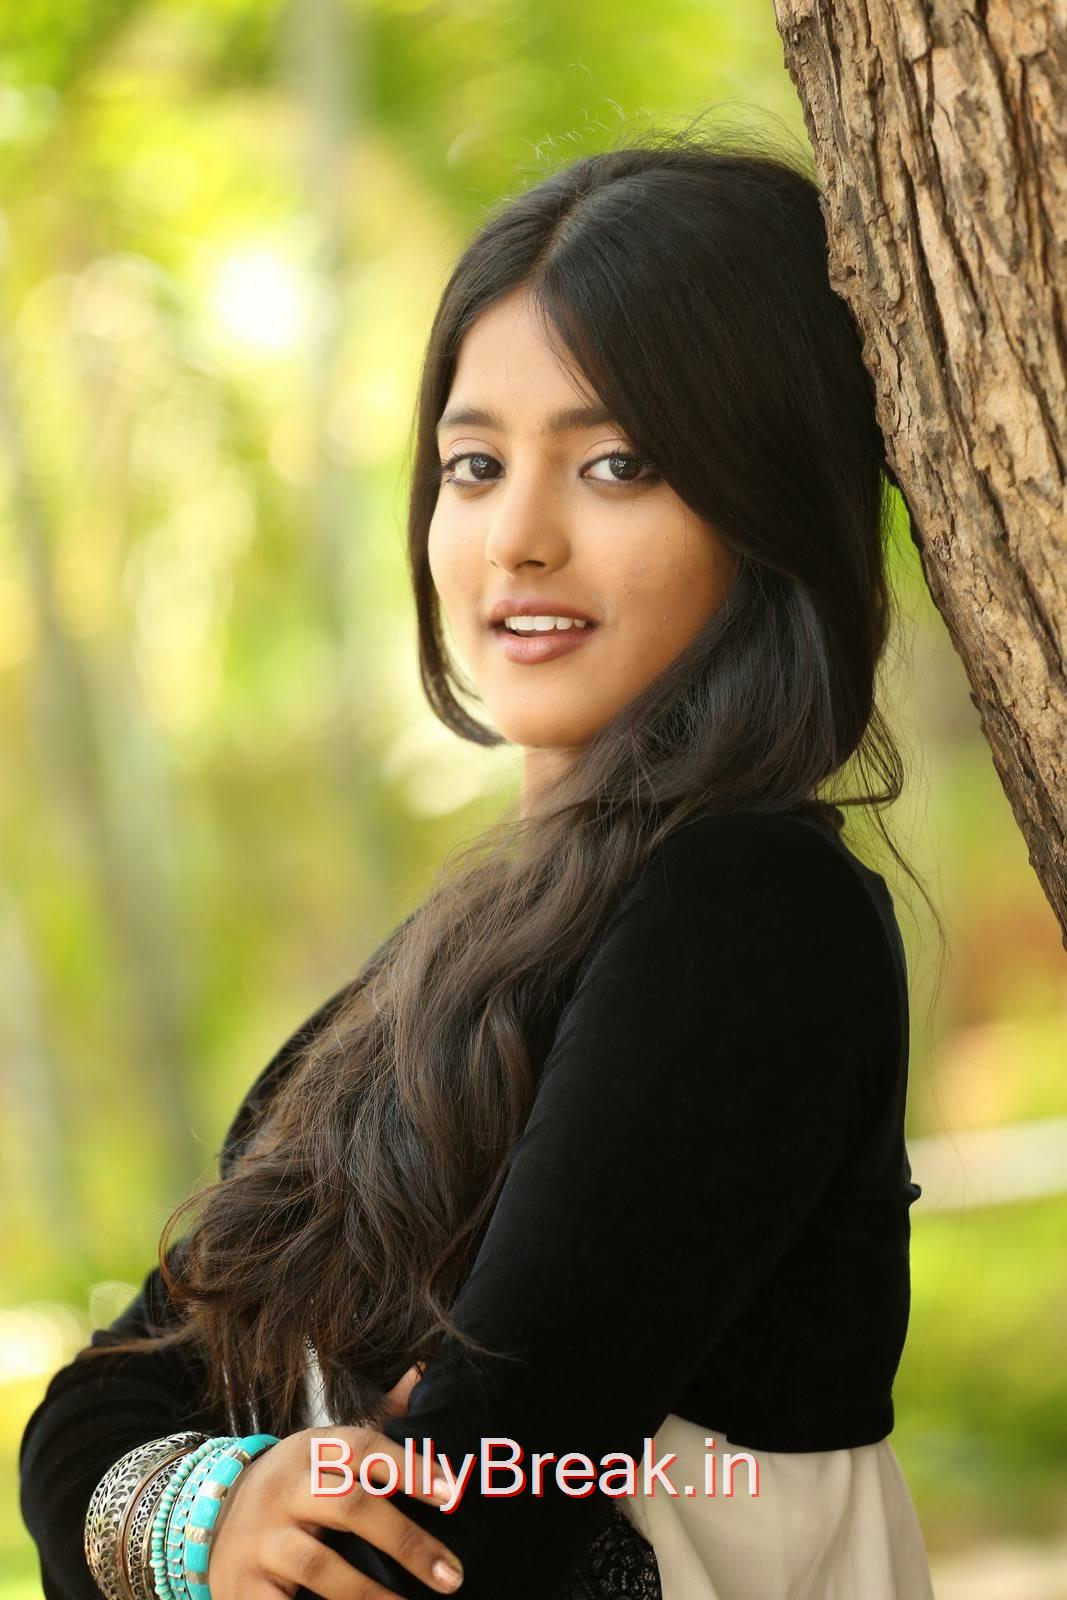 Ulka Gupta Pictures, Cute, Sweet, Innocent Indian Actress Ulka Gupta hot HD Photo Gallery Pics